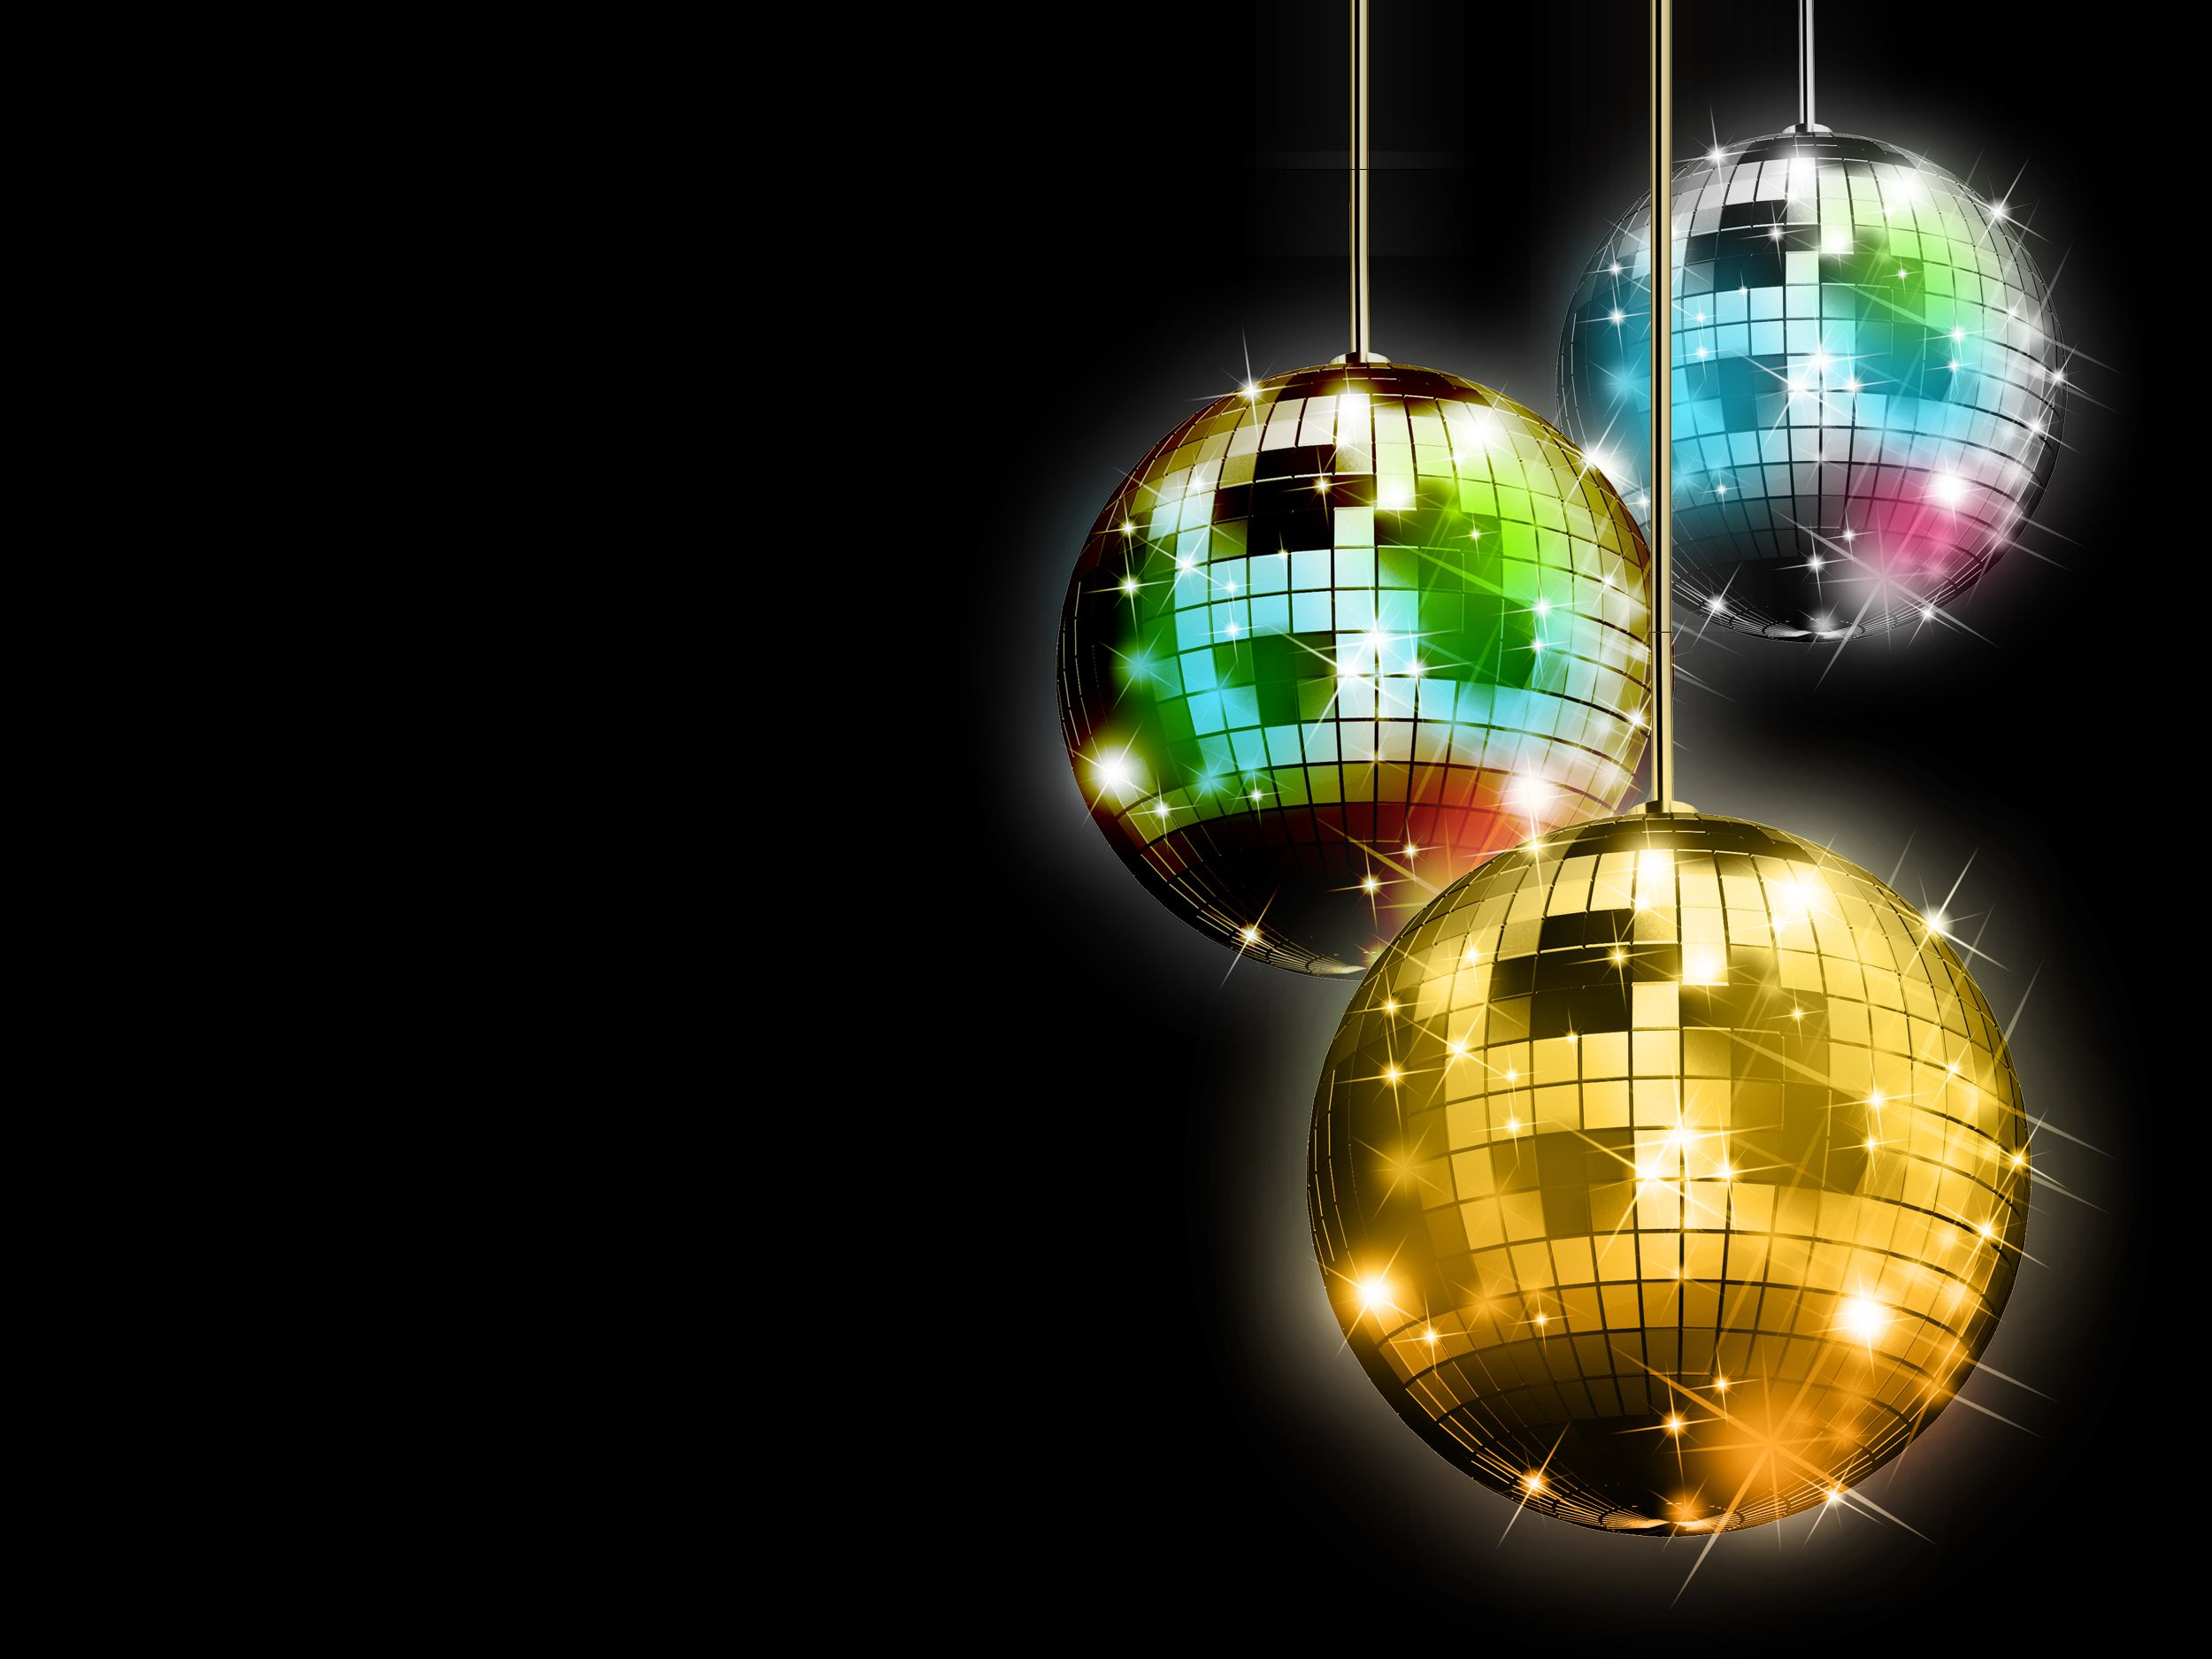 Disco Balls Background 002 (JPG)